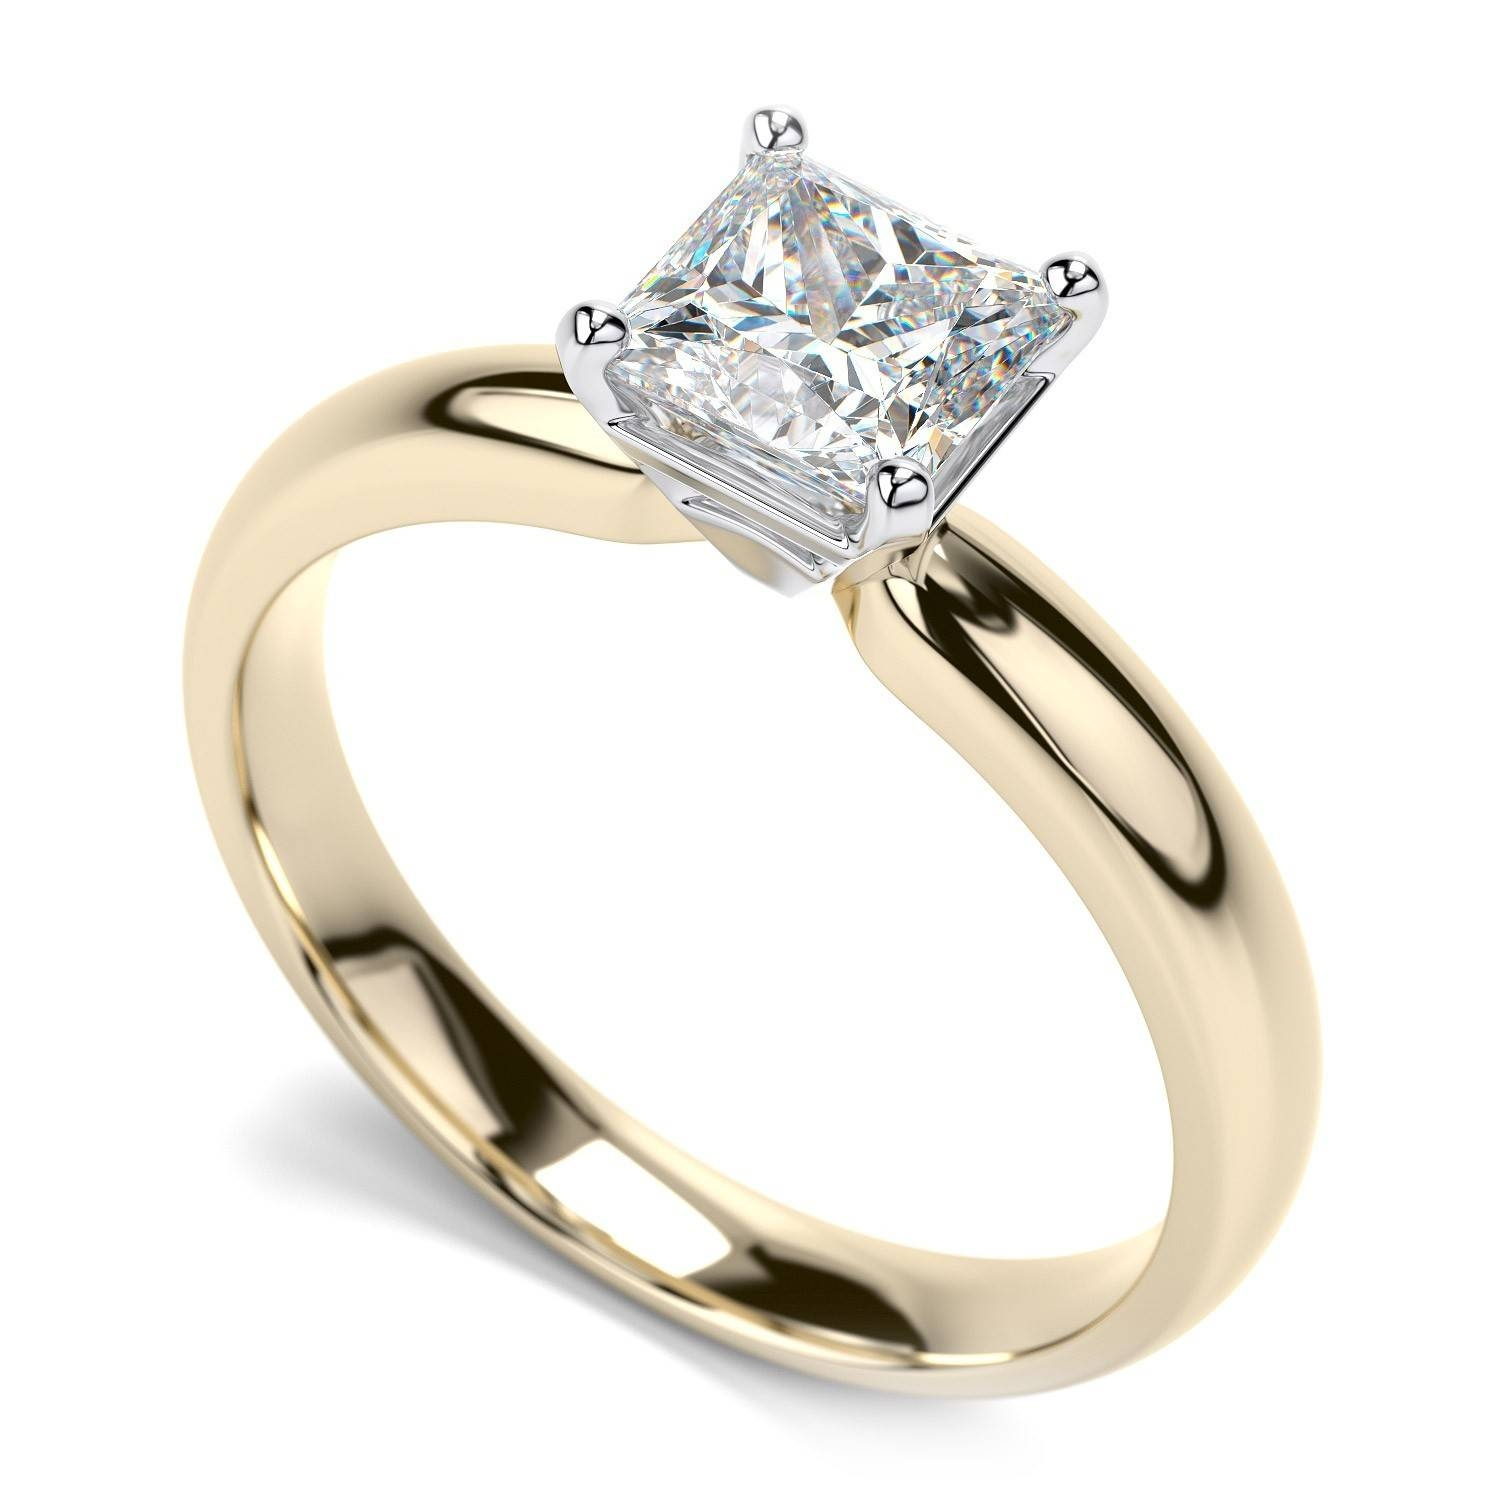 43 Fascinating Traditional Gold Engagement Rings | In Italy Wedding Within Traditional Gold Engagement Rings (View 4 of 15)